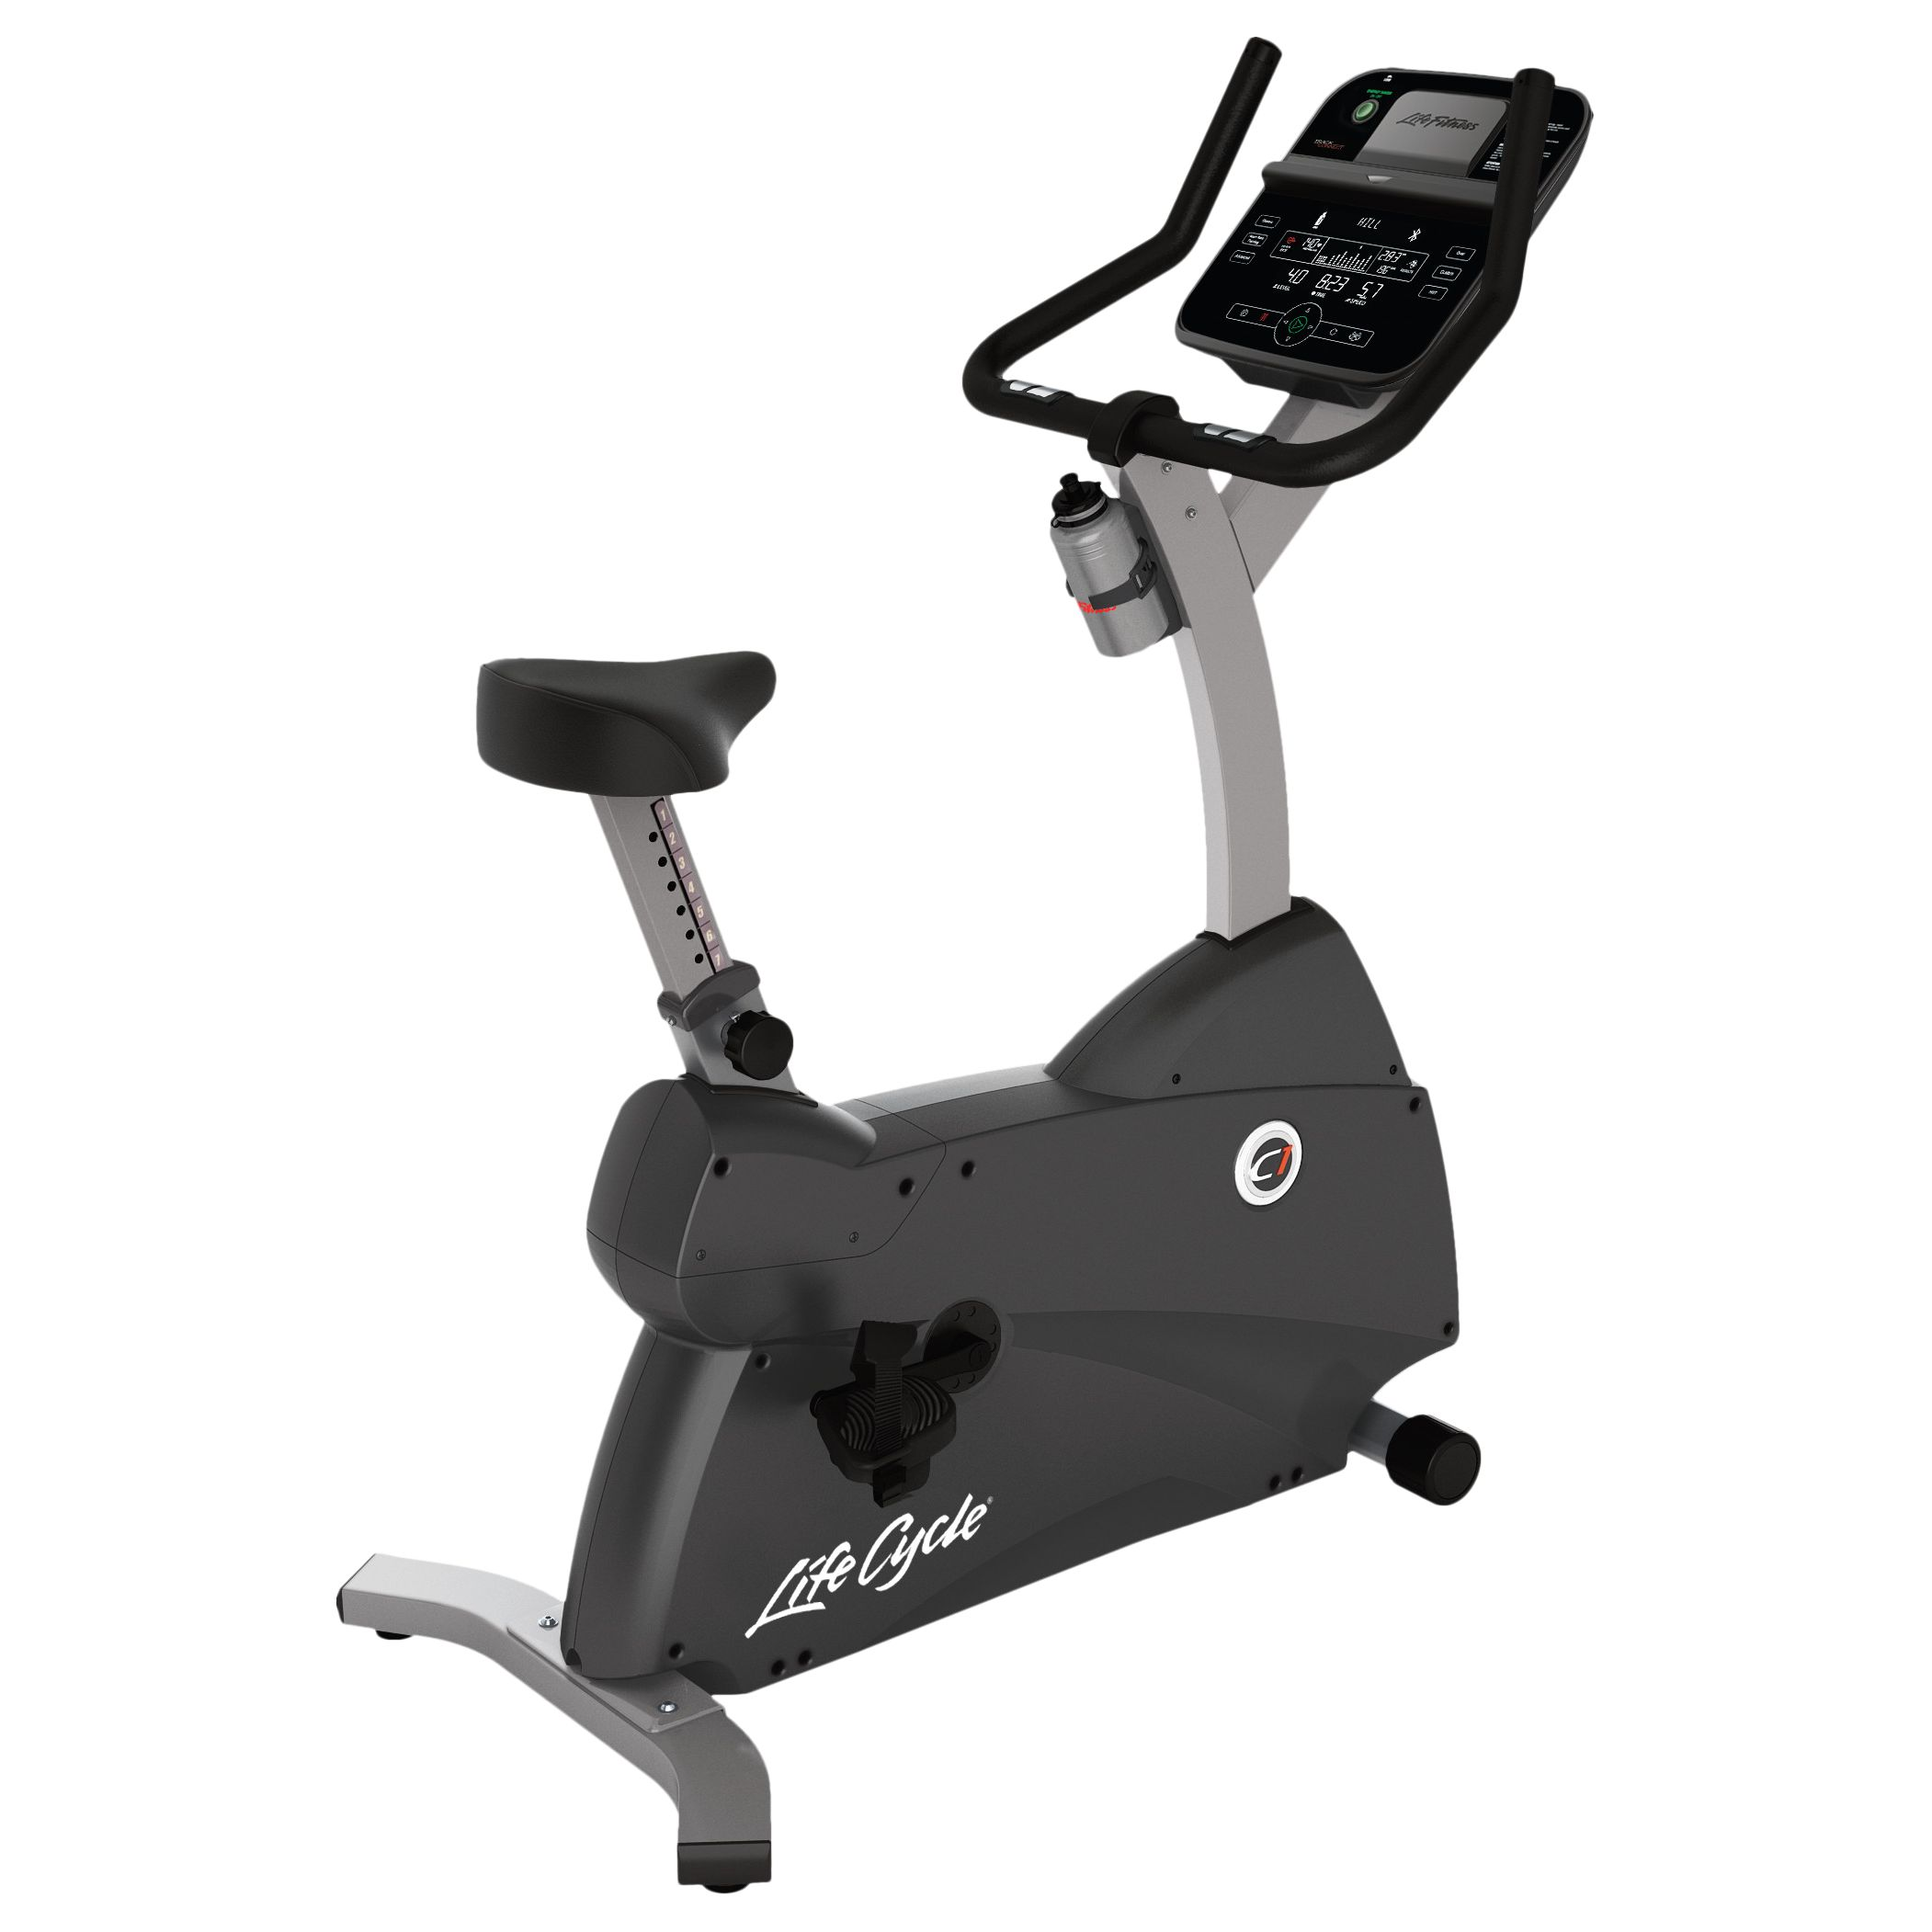 Life Fitness Life Fitness Lifecycle C1 Upright Exercise Bike with Track Connect Console